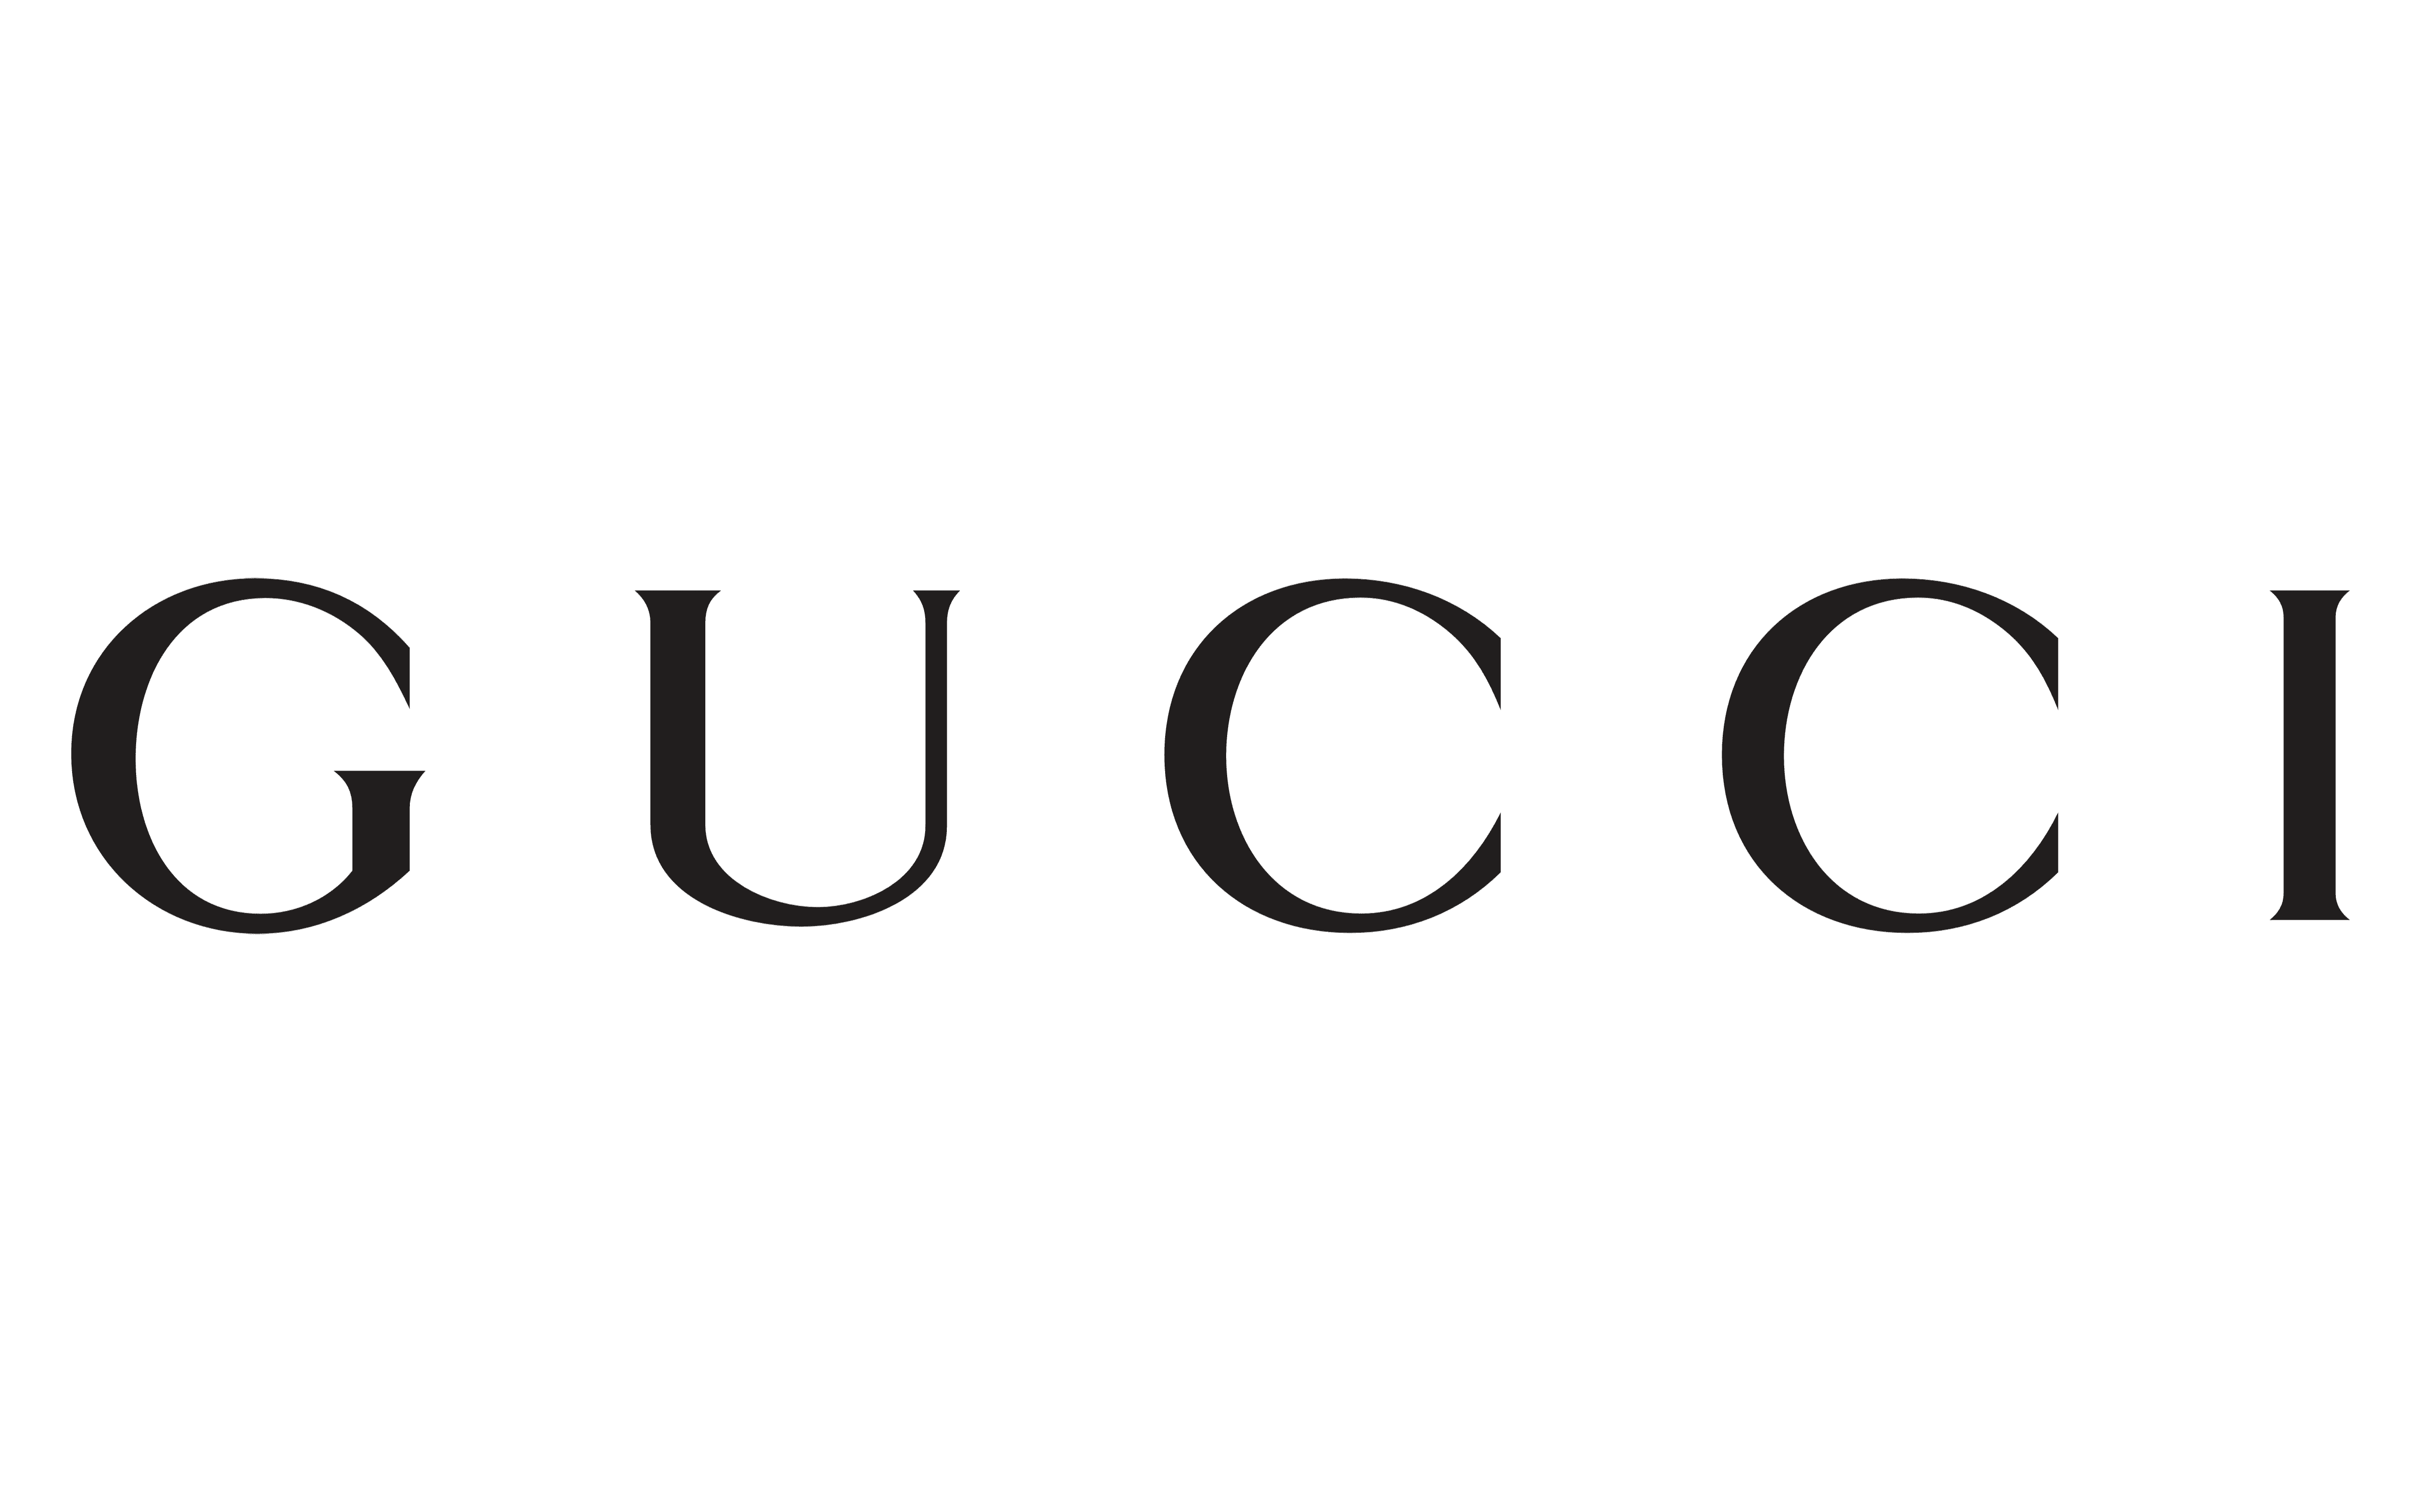 gucci logo gucci symbol meaning history and evolution rh 1000logos net gucci logo font download gucci logo font similar